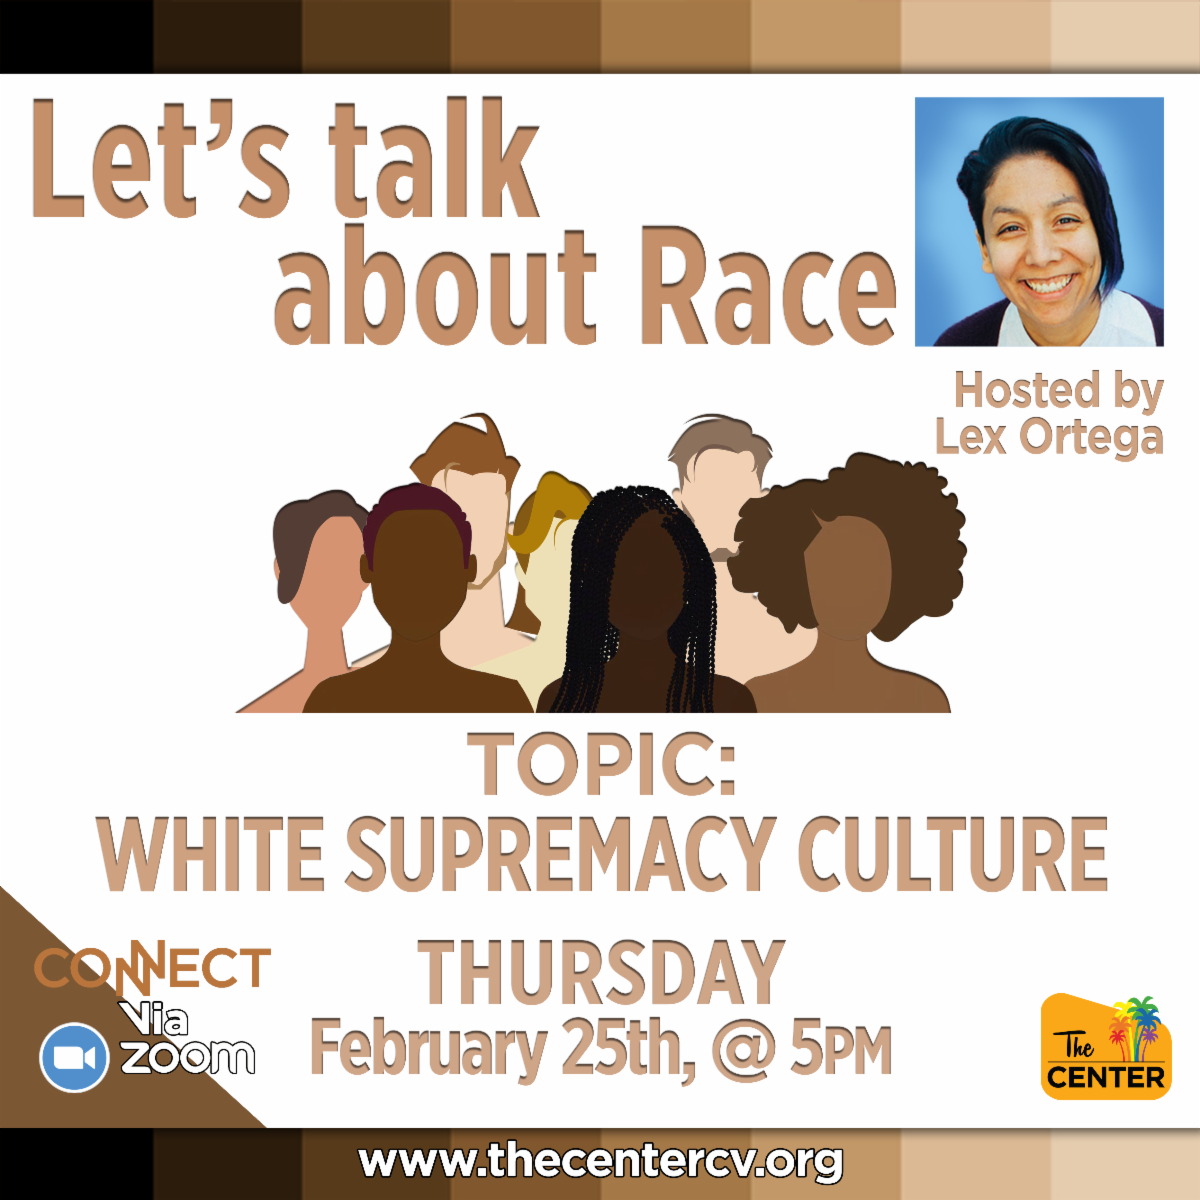 Let's Talk about Race - White Supremacy Culture